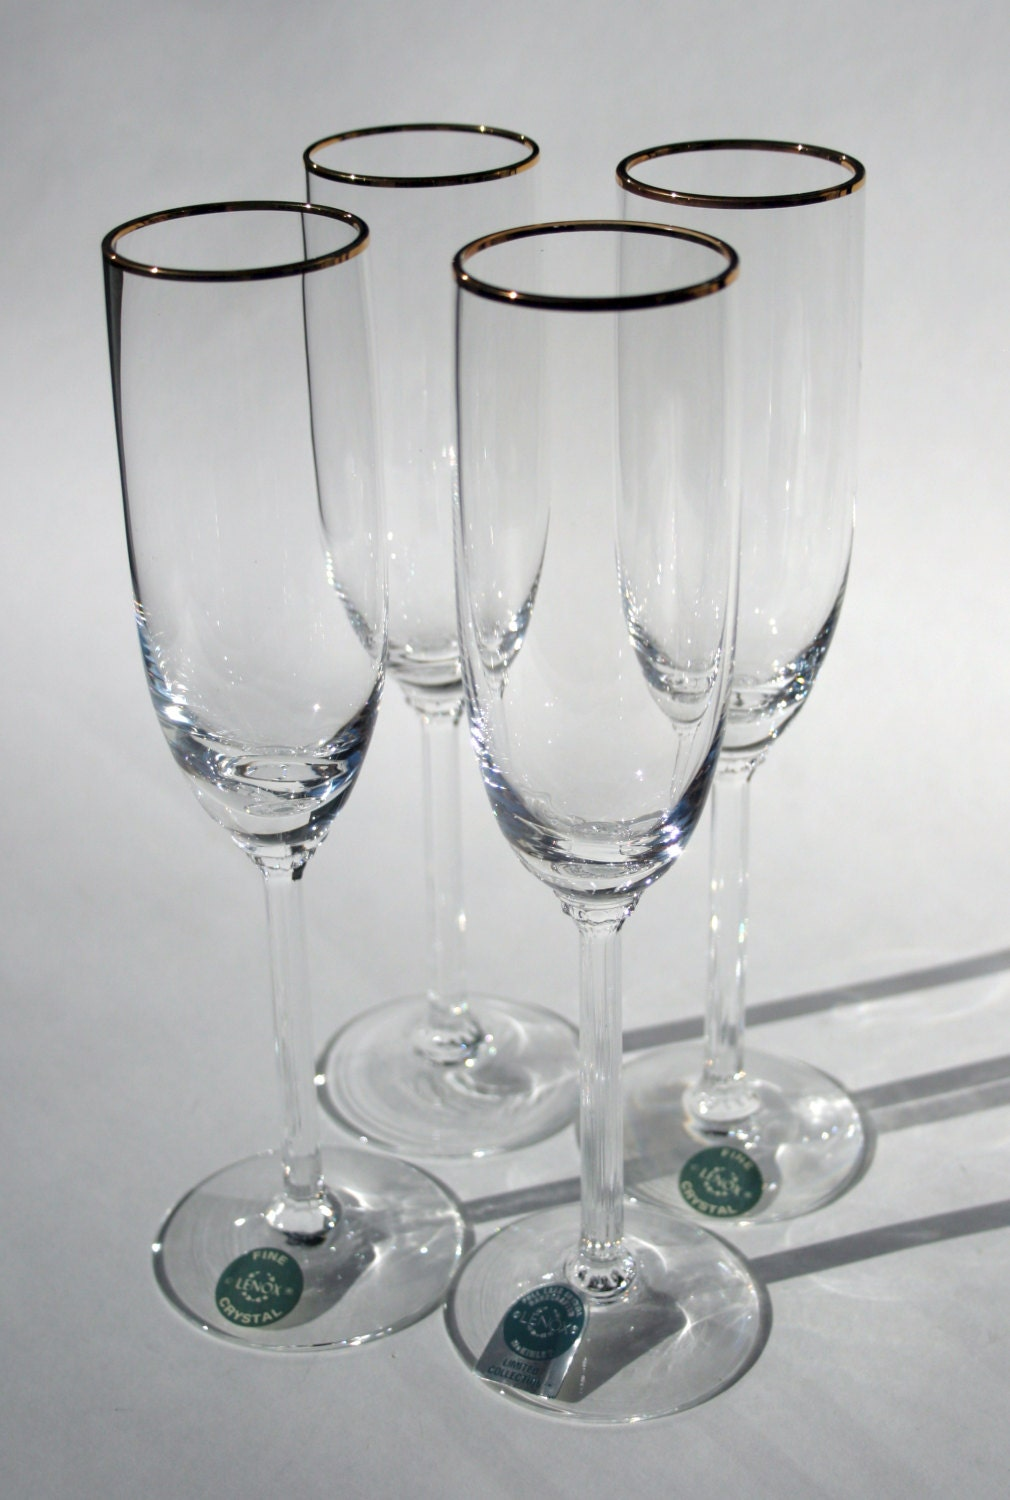 Handcrafted classic fine lenox full lead crystal by cherryrevolver - Lenox gold rimmed wine glasses ...